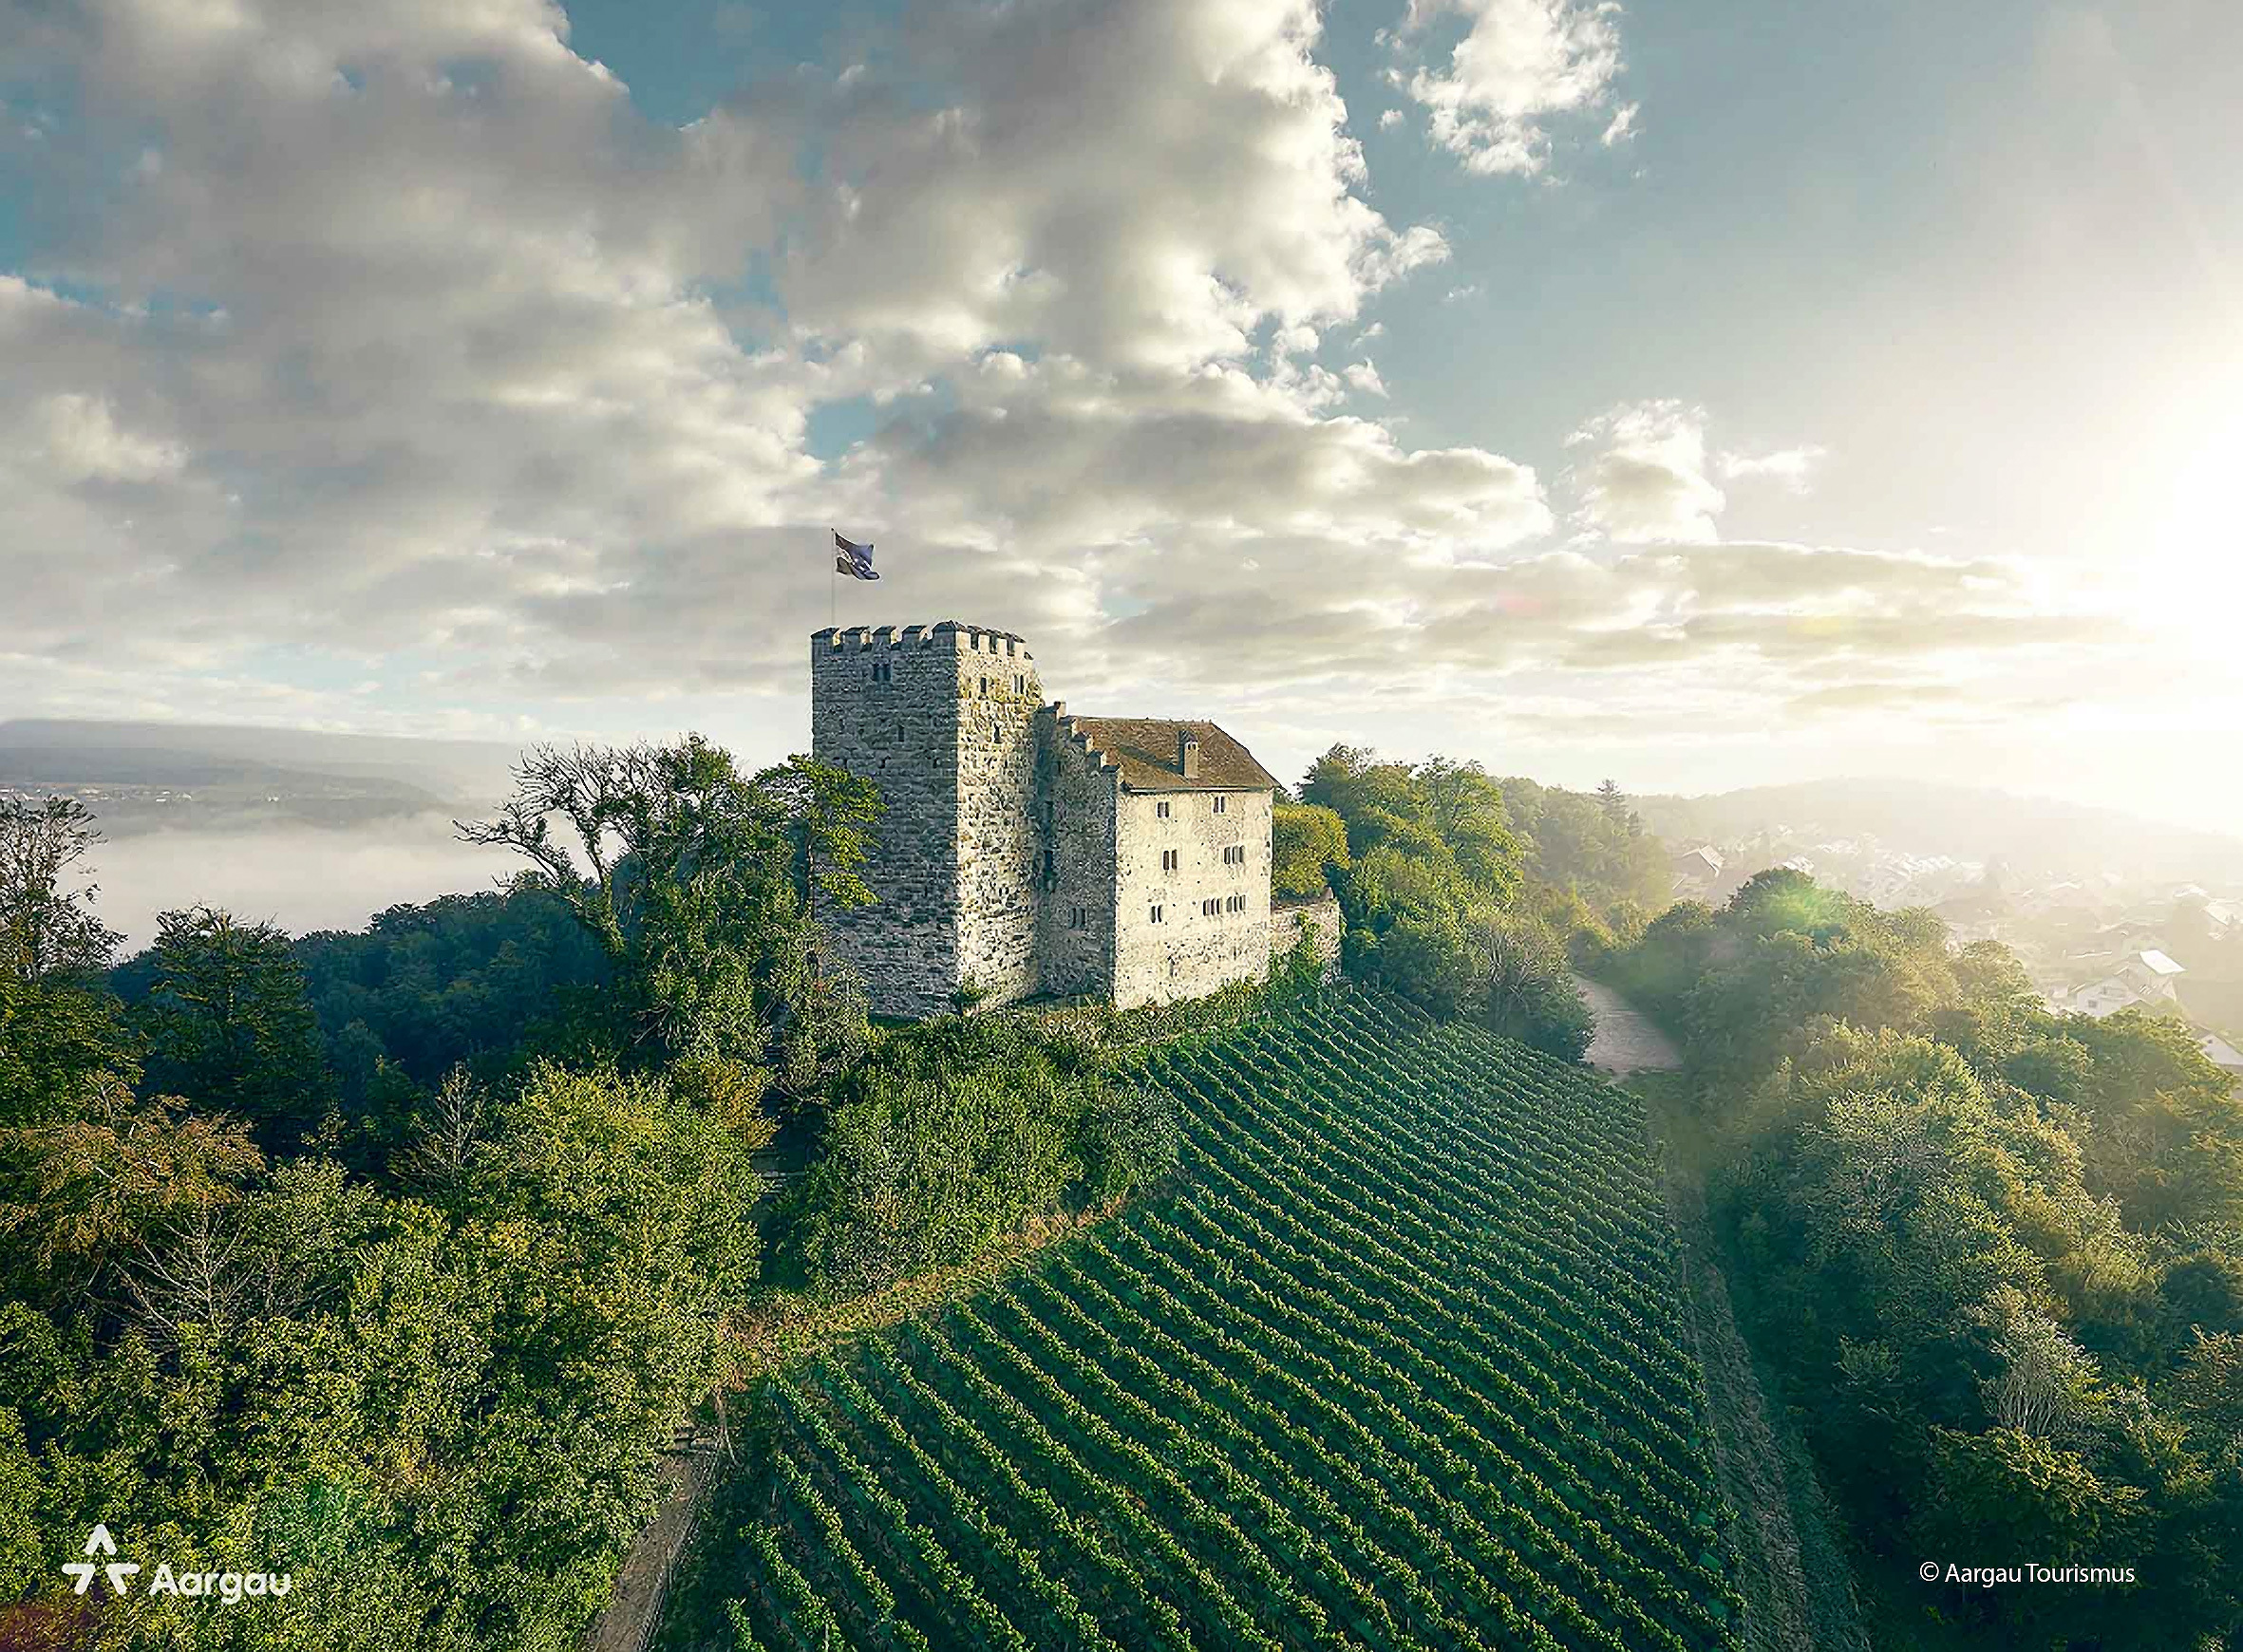 Destinations and sights in the Canton of Aargau